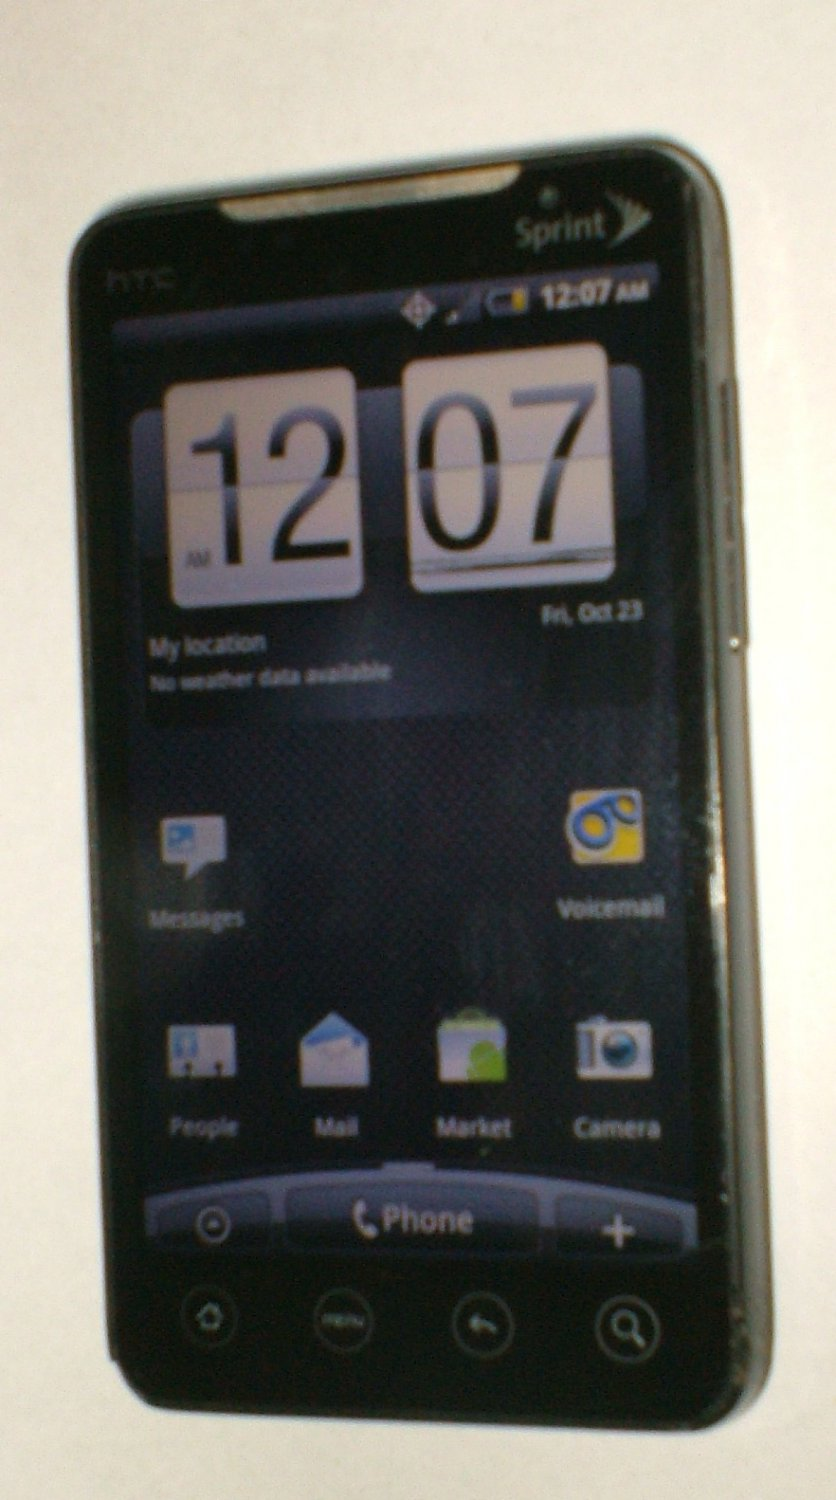 HTC EVO 4G (Sprint) Smartphone with charger